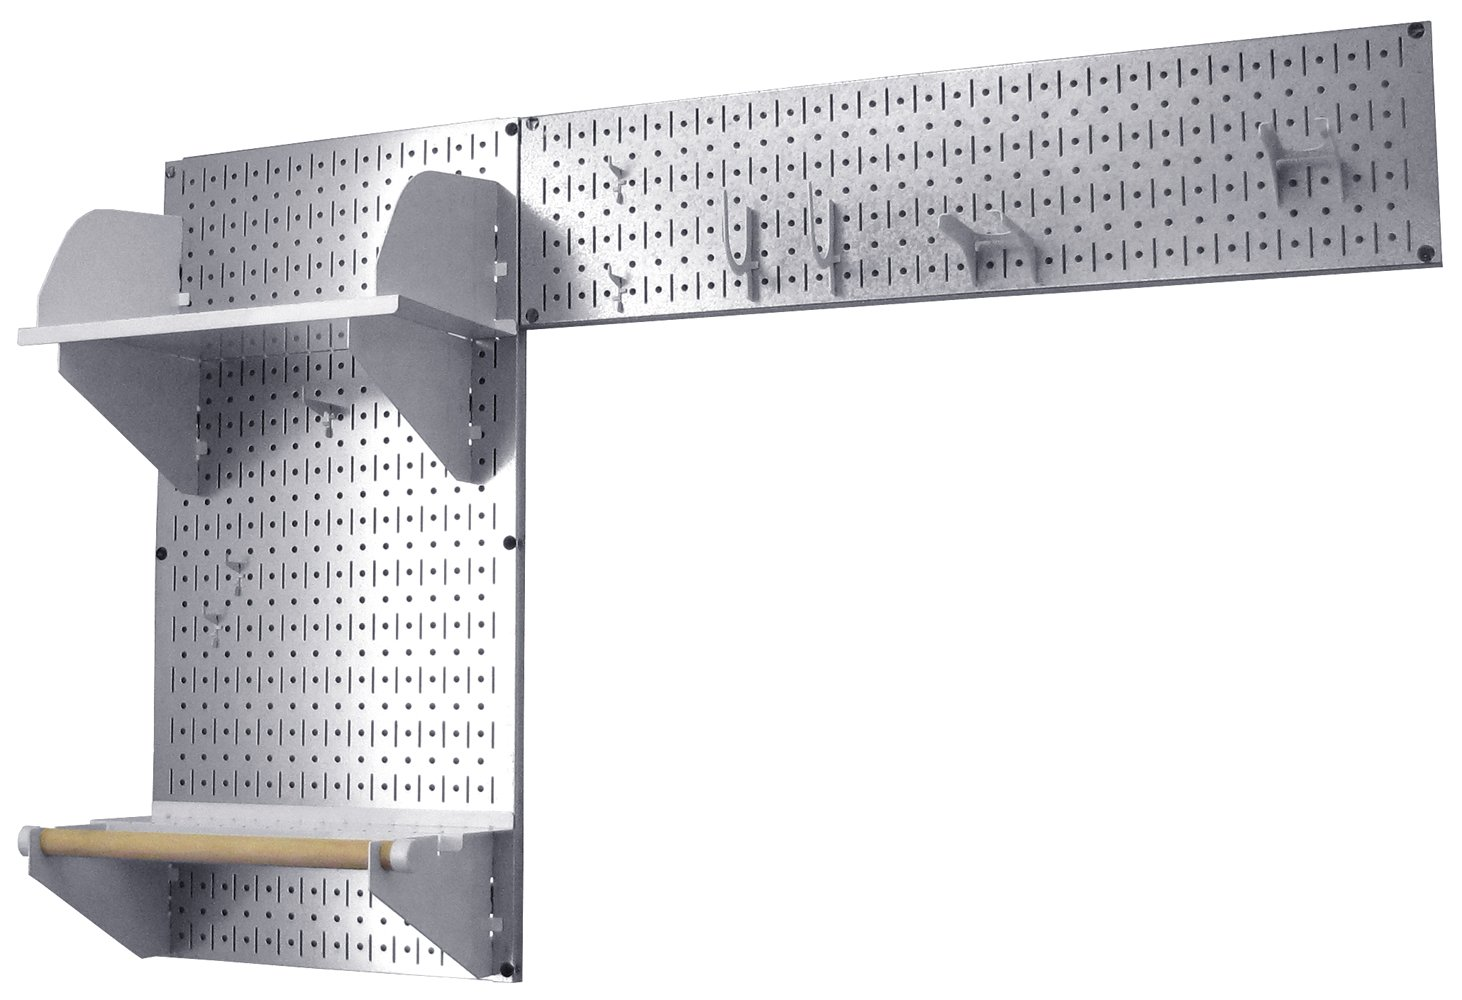 Wall Control Pegboard Garden Supplies Storage and Organization Garden Tool Organizer Kit with Metallic Pegboard and White Accessories